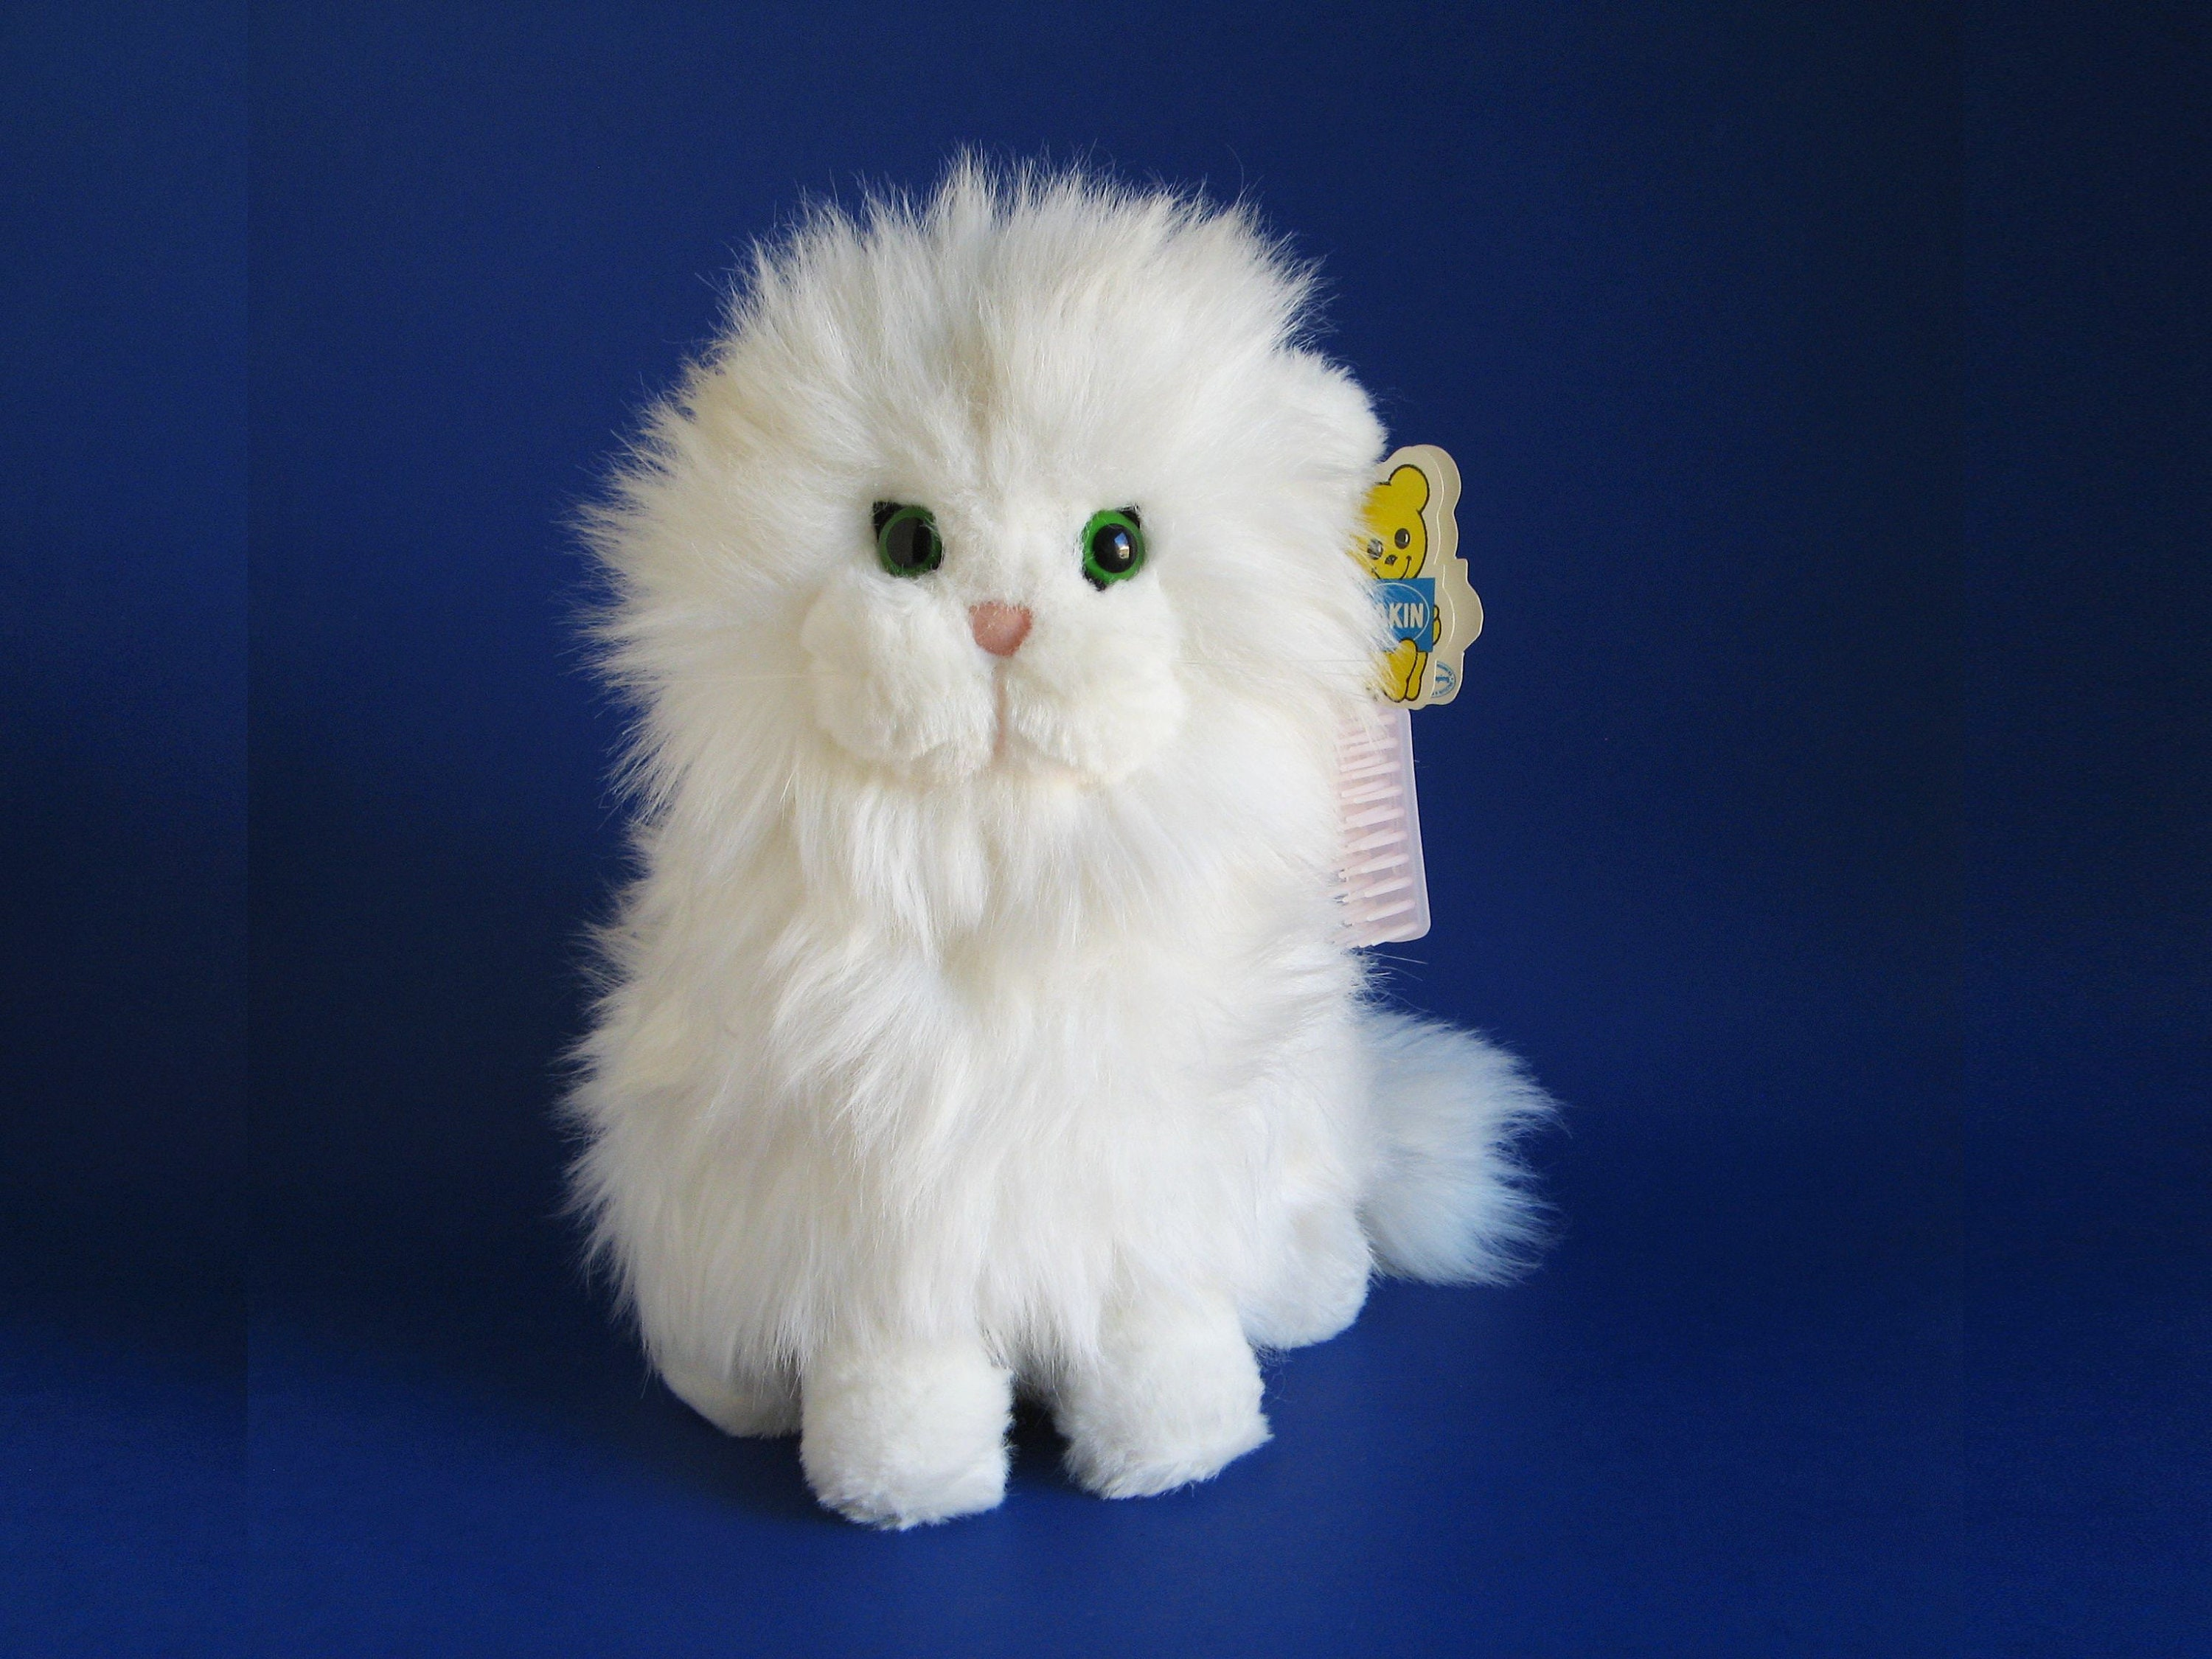 Vintage White Cat Stuffed Animal With Original Pink Brush By Etsy